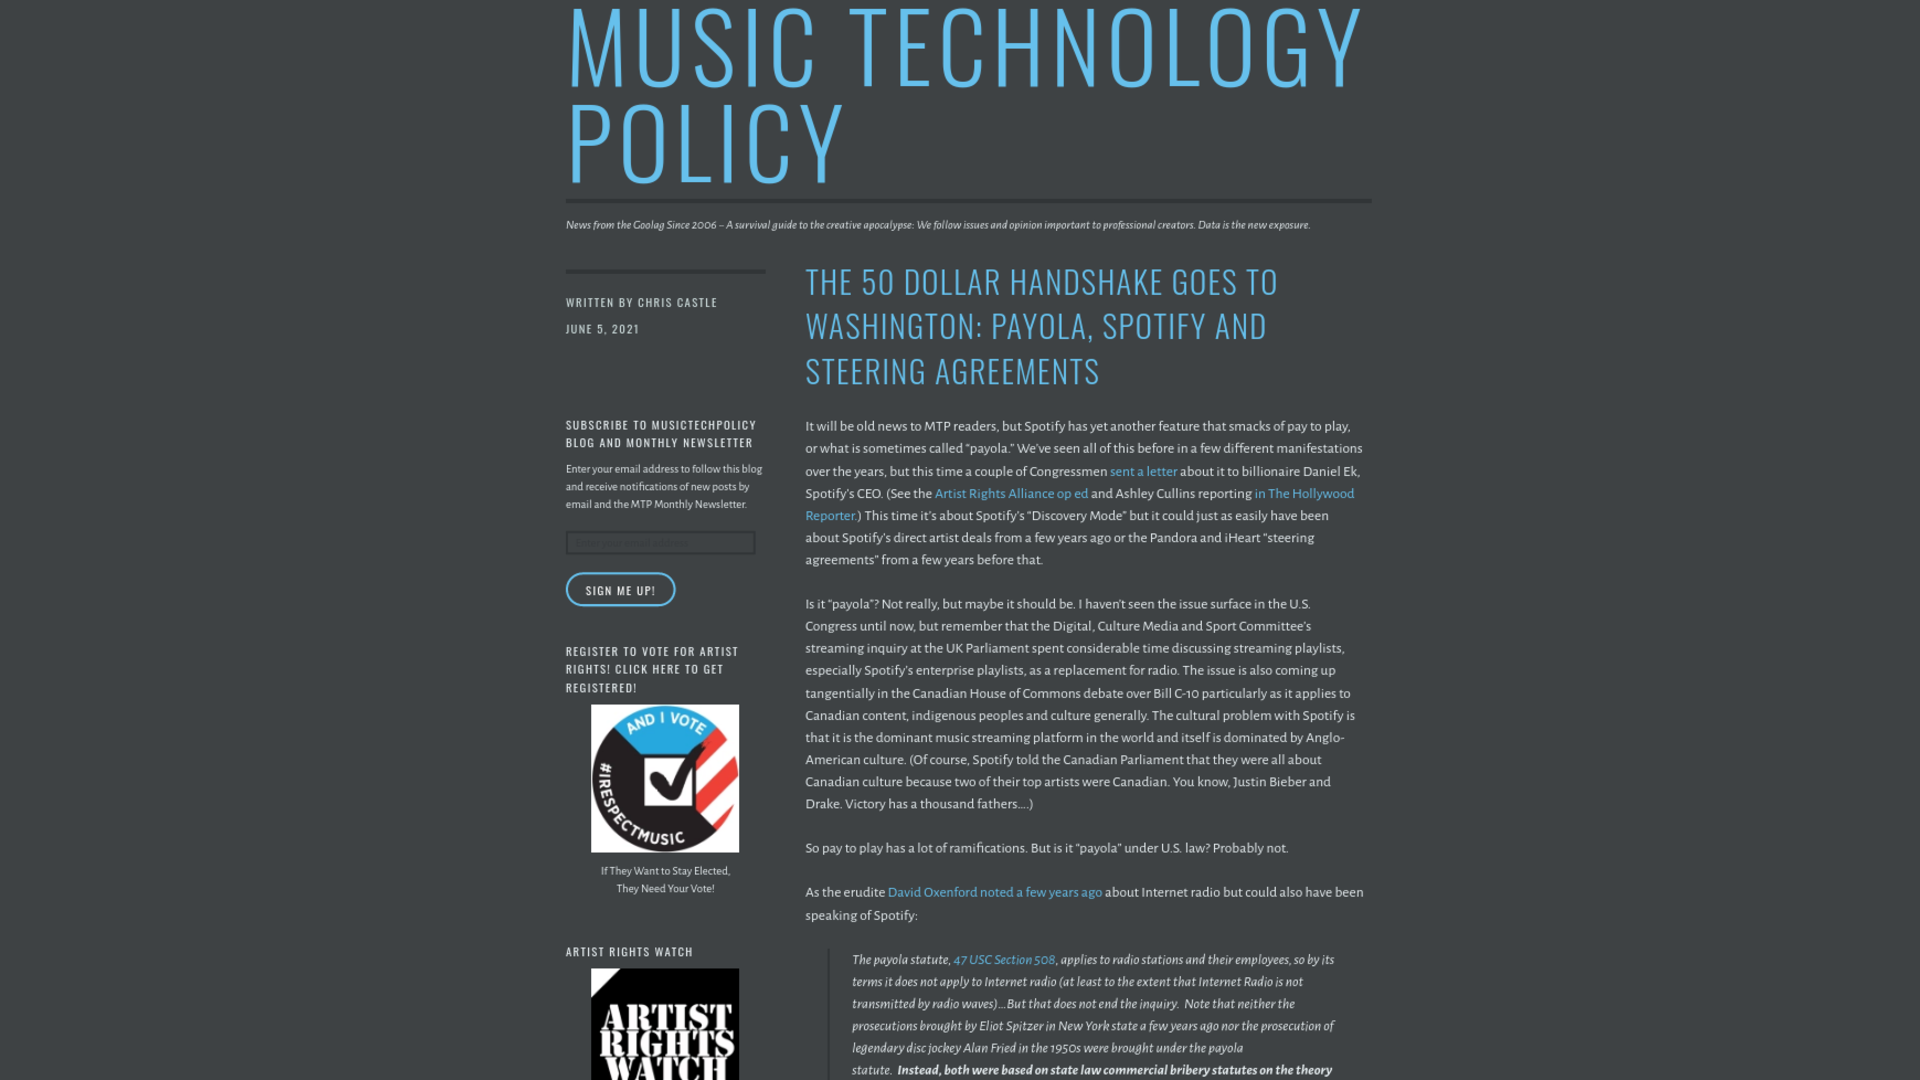 Fairness Rocks News The 50 Dollar Handshake Goes to Washington: Payola, Spotify and Steering Agreements